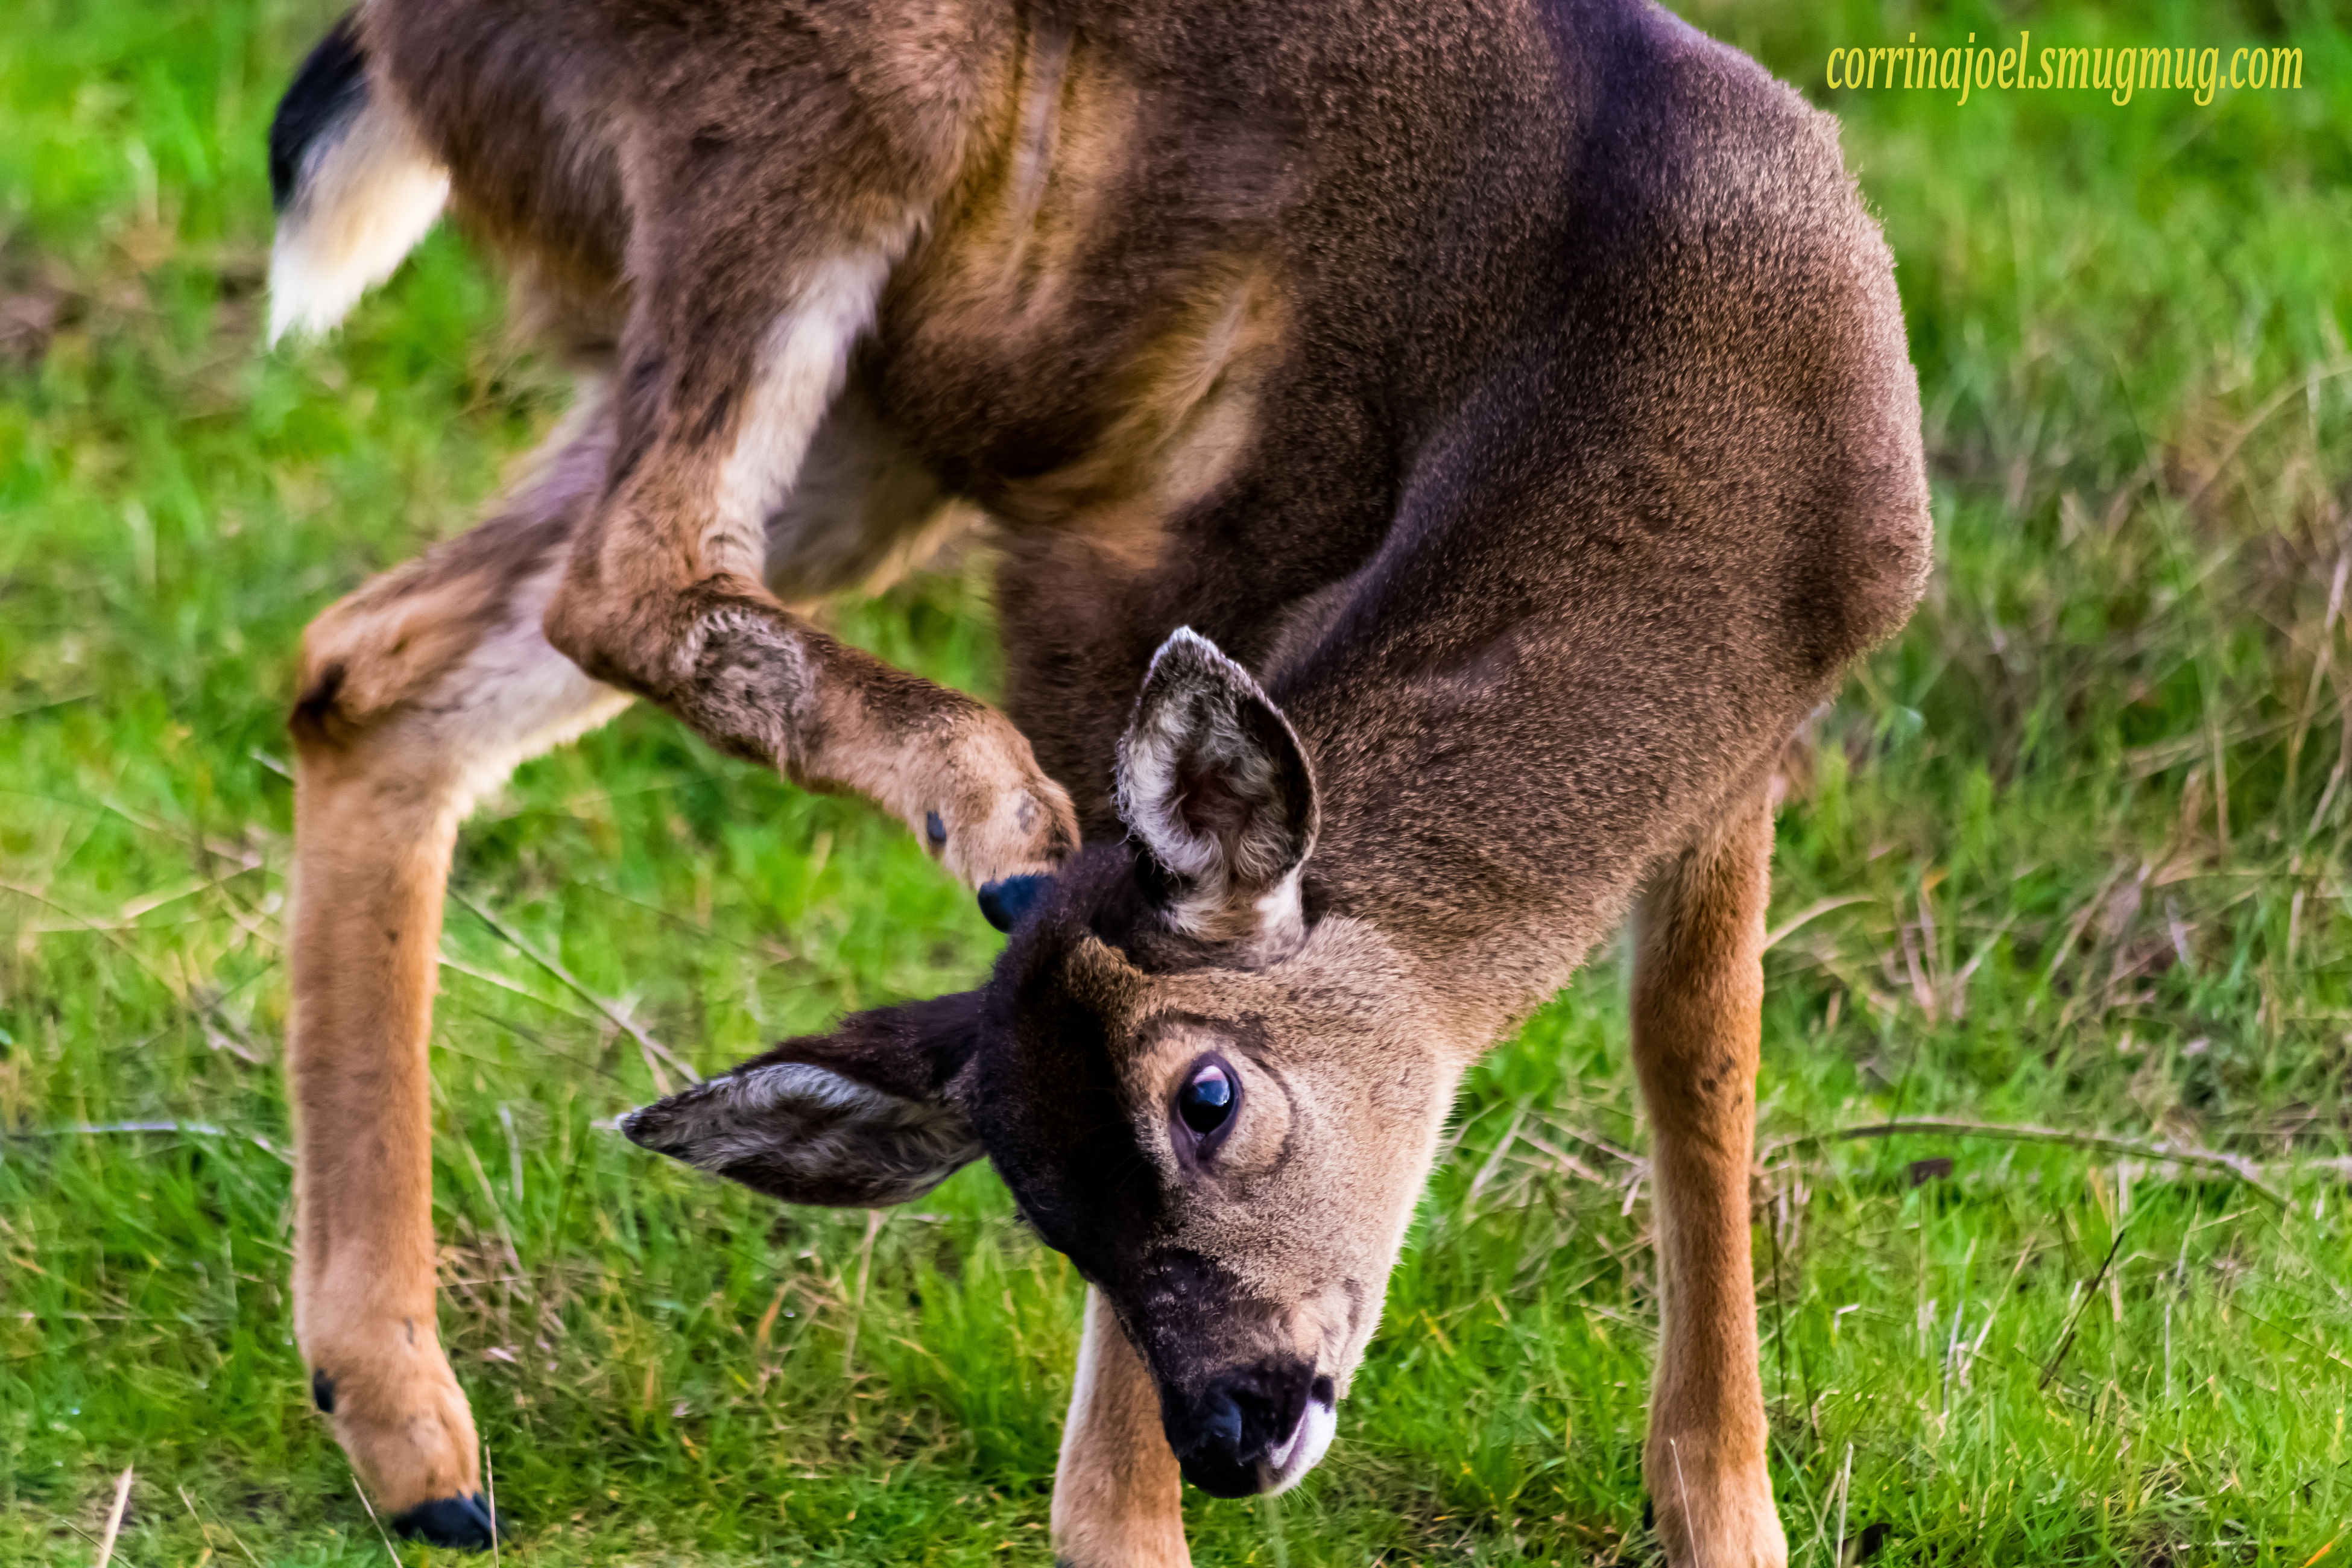 animal themes, mammal, grass, field, animals in the wild, wildlife, one animal, livestock, grassy, standing, young animal, nature, herbivorous, two animals, domestic animals, focus on foreground, grazing, deer, horned, outdoors